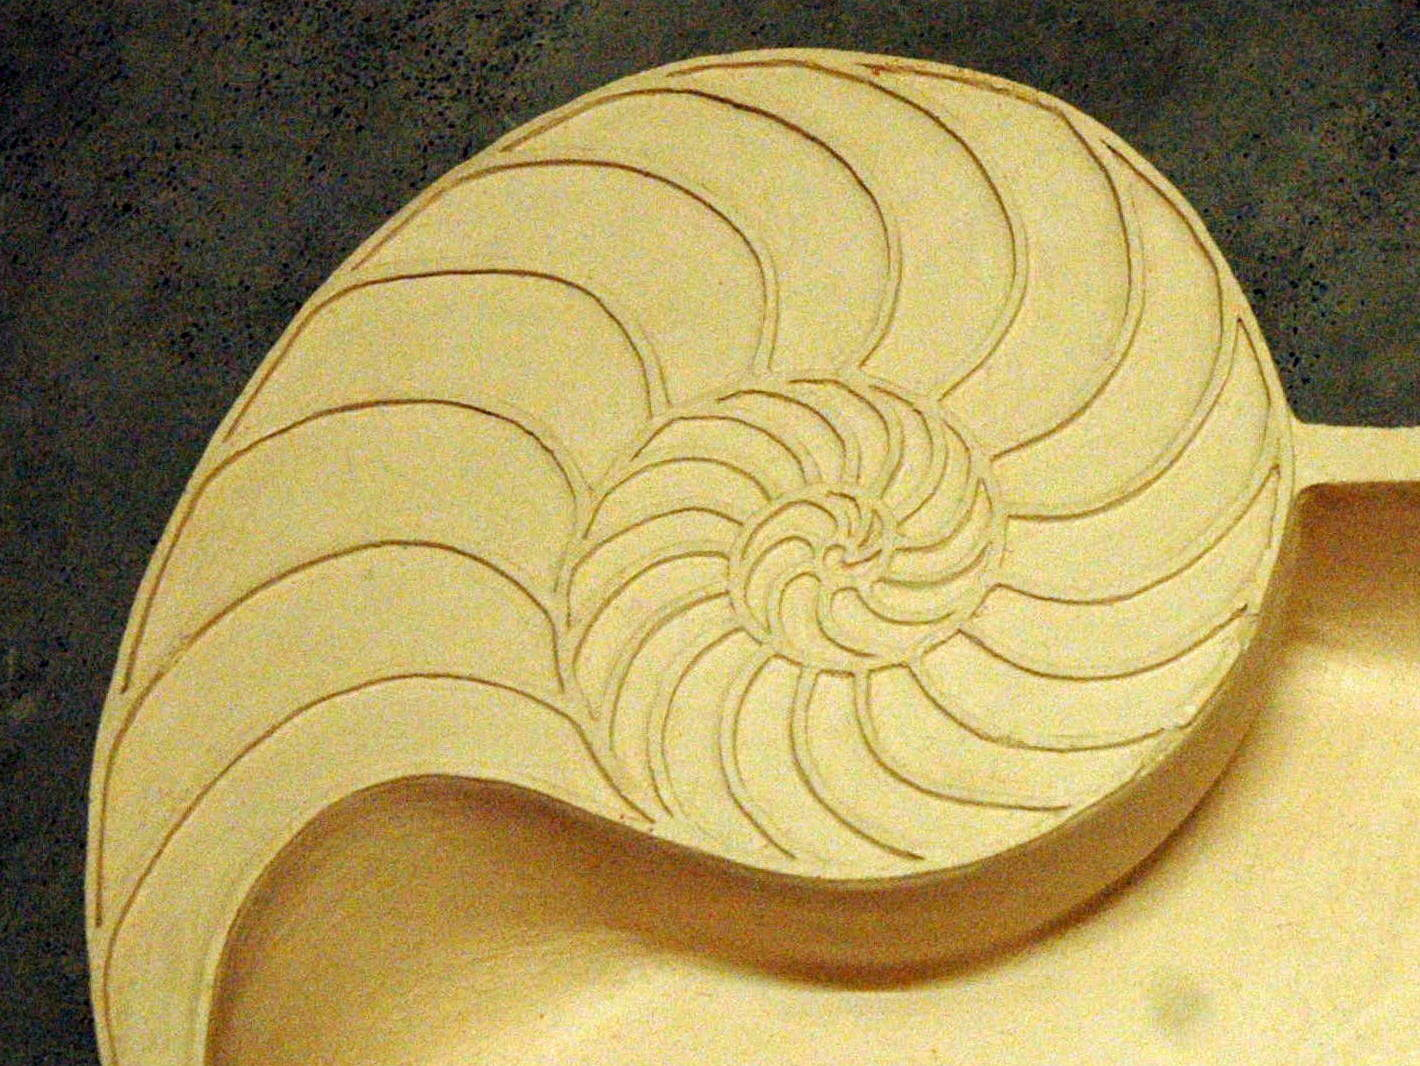 New Nautilus Basin, still showing the beauty of the spirals but with a design that is easier to clean and maintain.